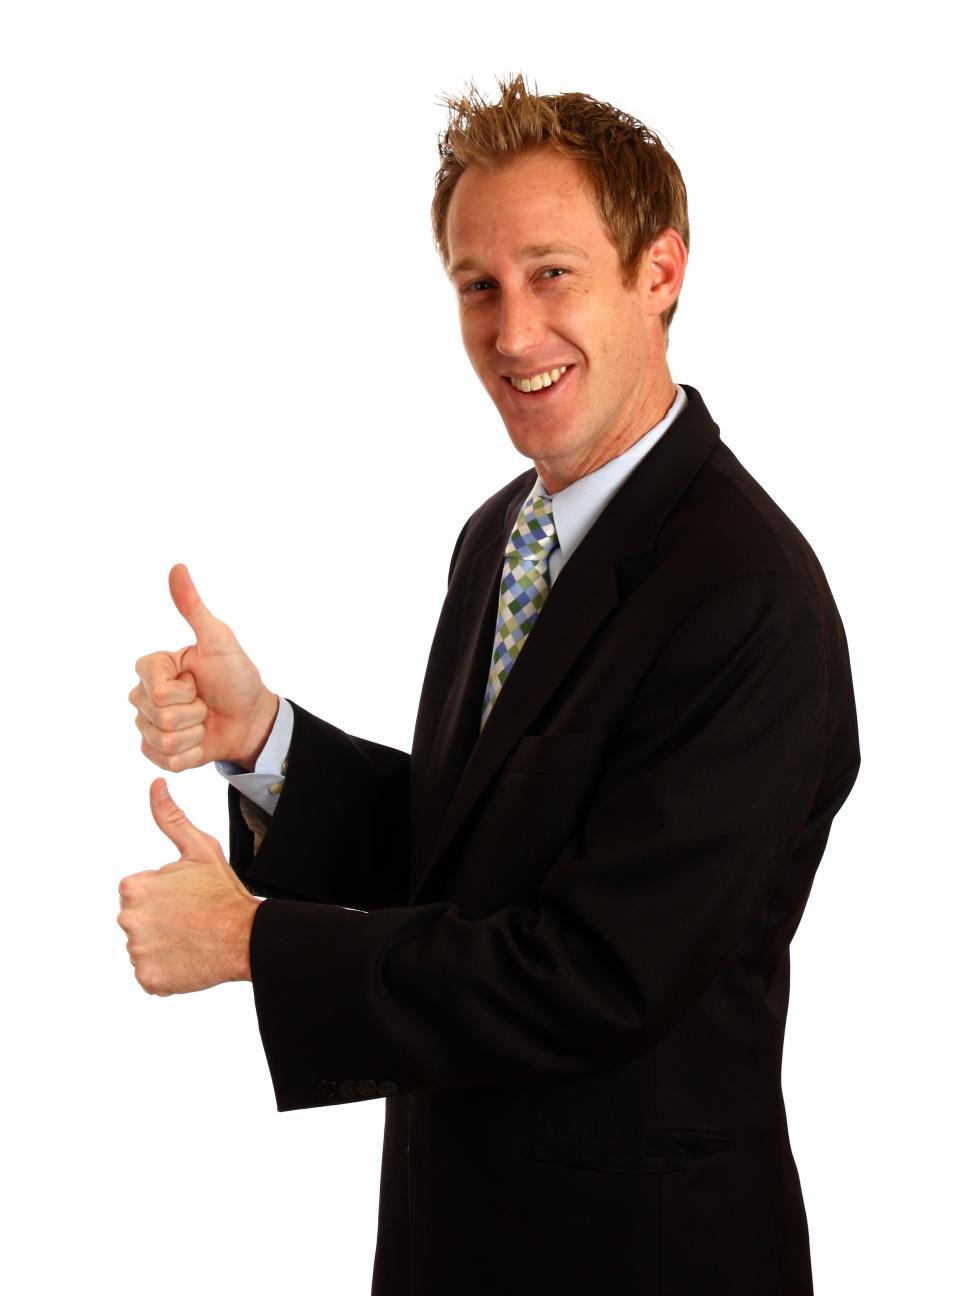 Download Free Stock Photo of A young businessman giving a thumbs up signal with his hands